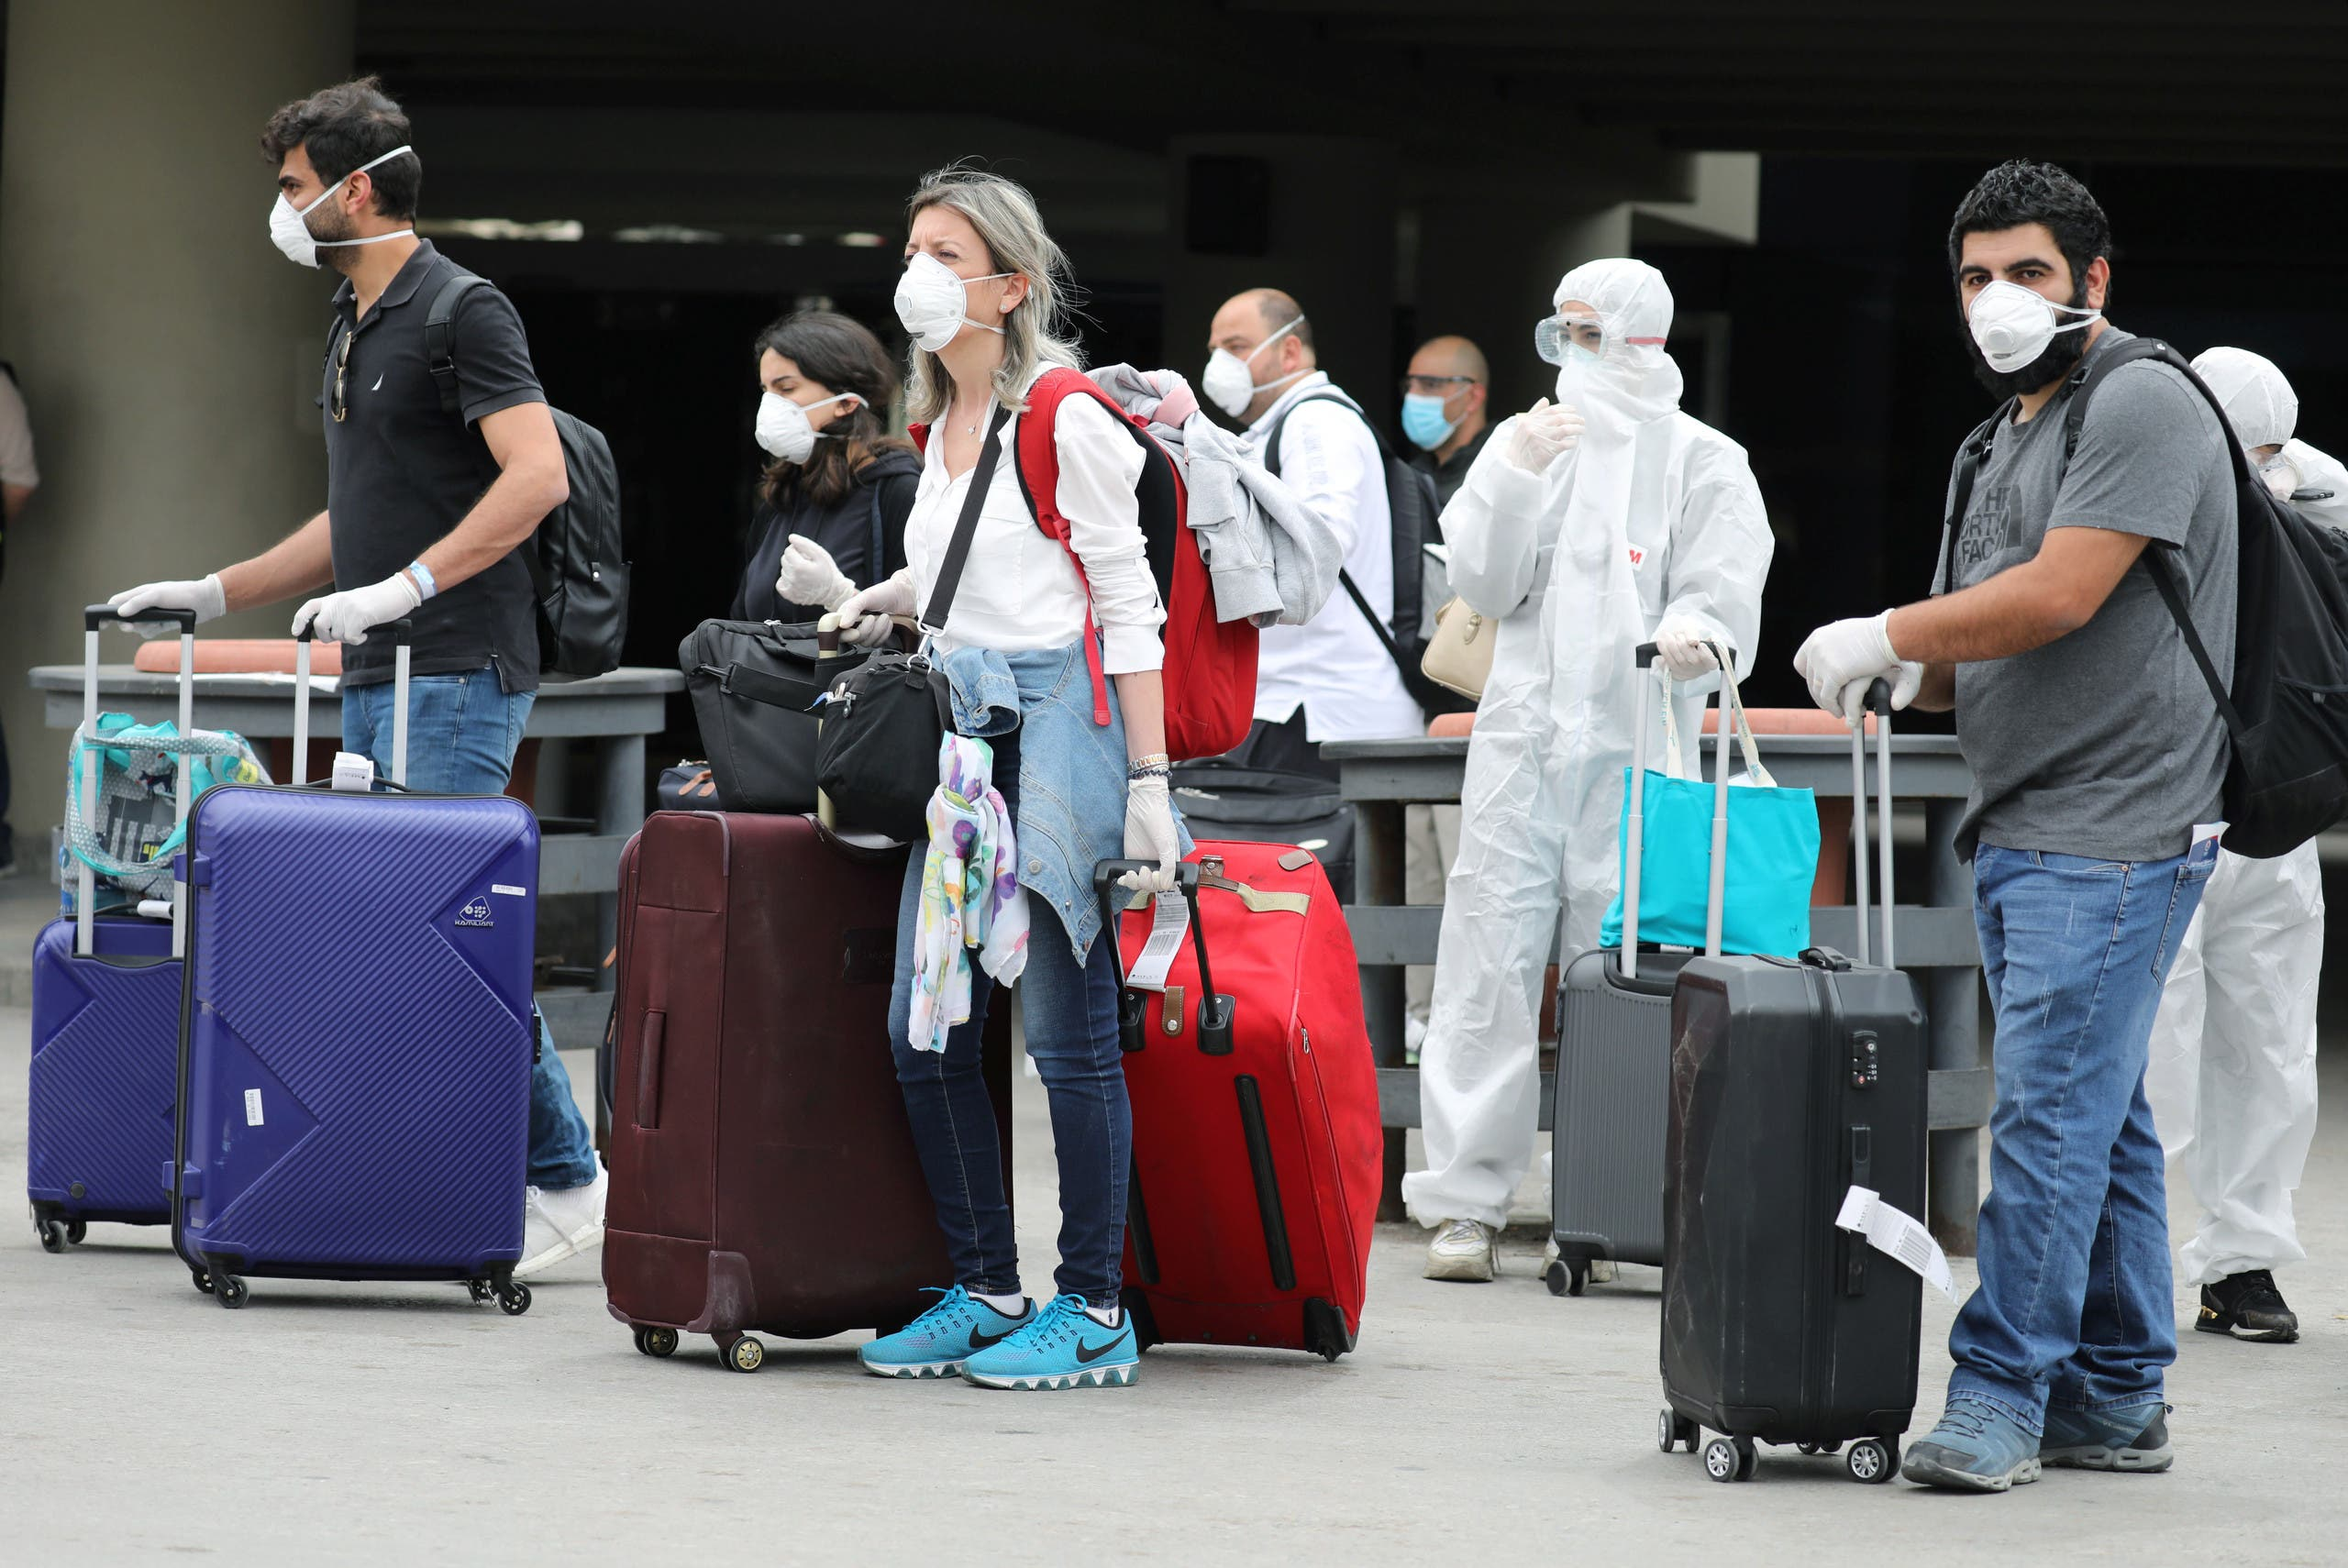 Lebanese people, who were stranded abroad by coronavirus lockdowns, are pictured wearing face masks and gloves as they hold their luggage upon arrival at Beirut's international airport, Lebanon April 5, 2020. (Reuters)